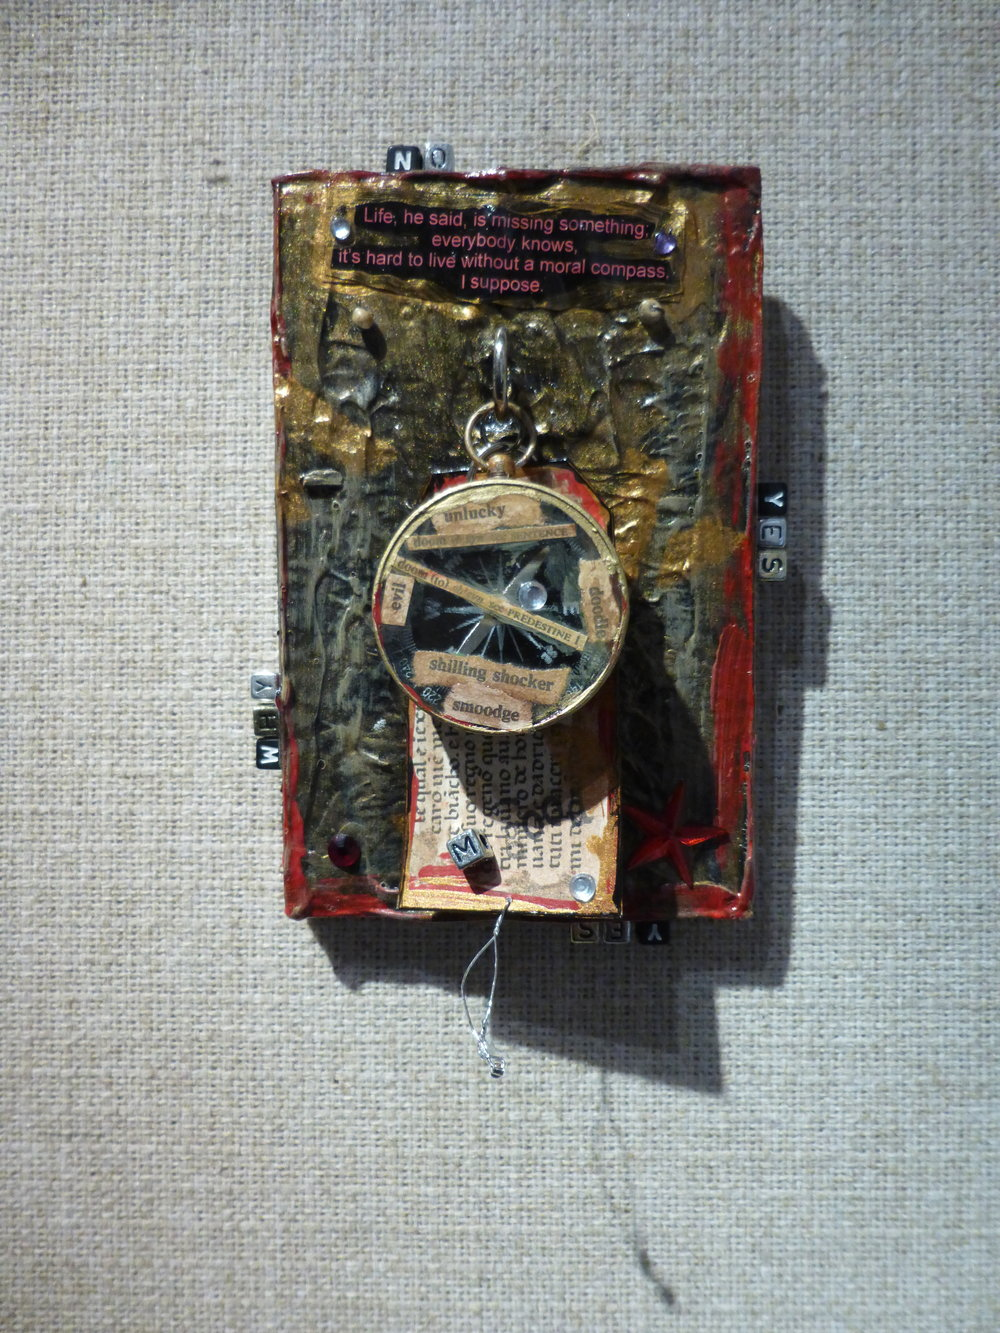 """the oracle of pain"", mixed-media collage.  Wood, acrylic paint, found objects, beads, tag, compass, text:  ""Life; he said, is missing something,  everybody knows,  it's hard to live without a moral compass,  I suppose""."